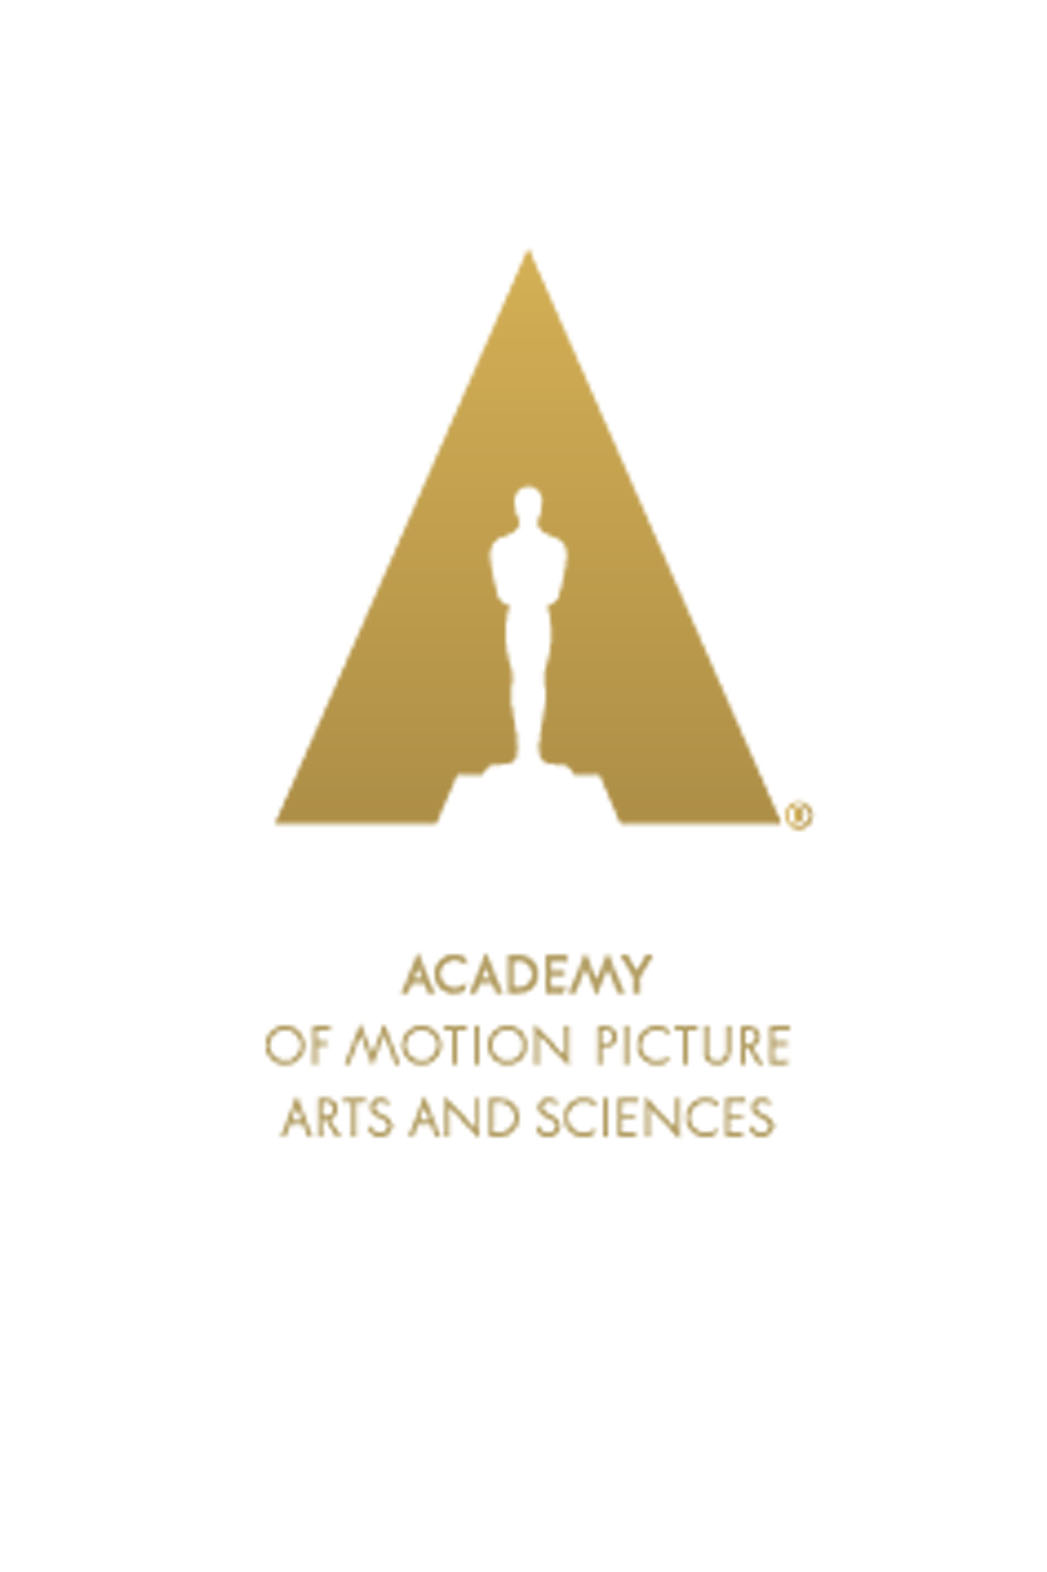 New Academy of Motion Picture Arts and Sciences Logo - P 2013